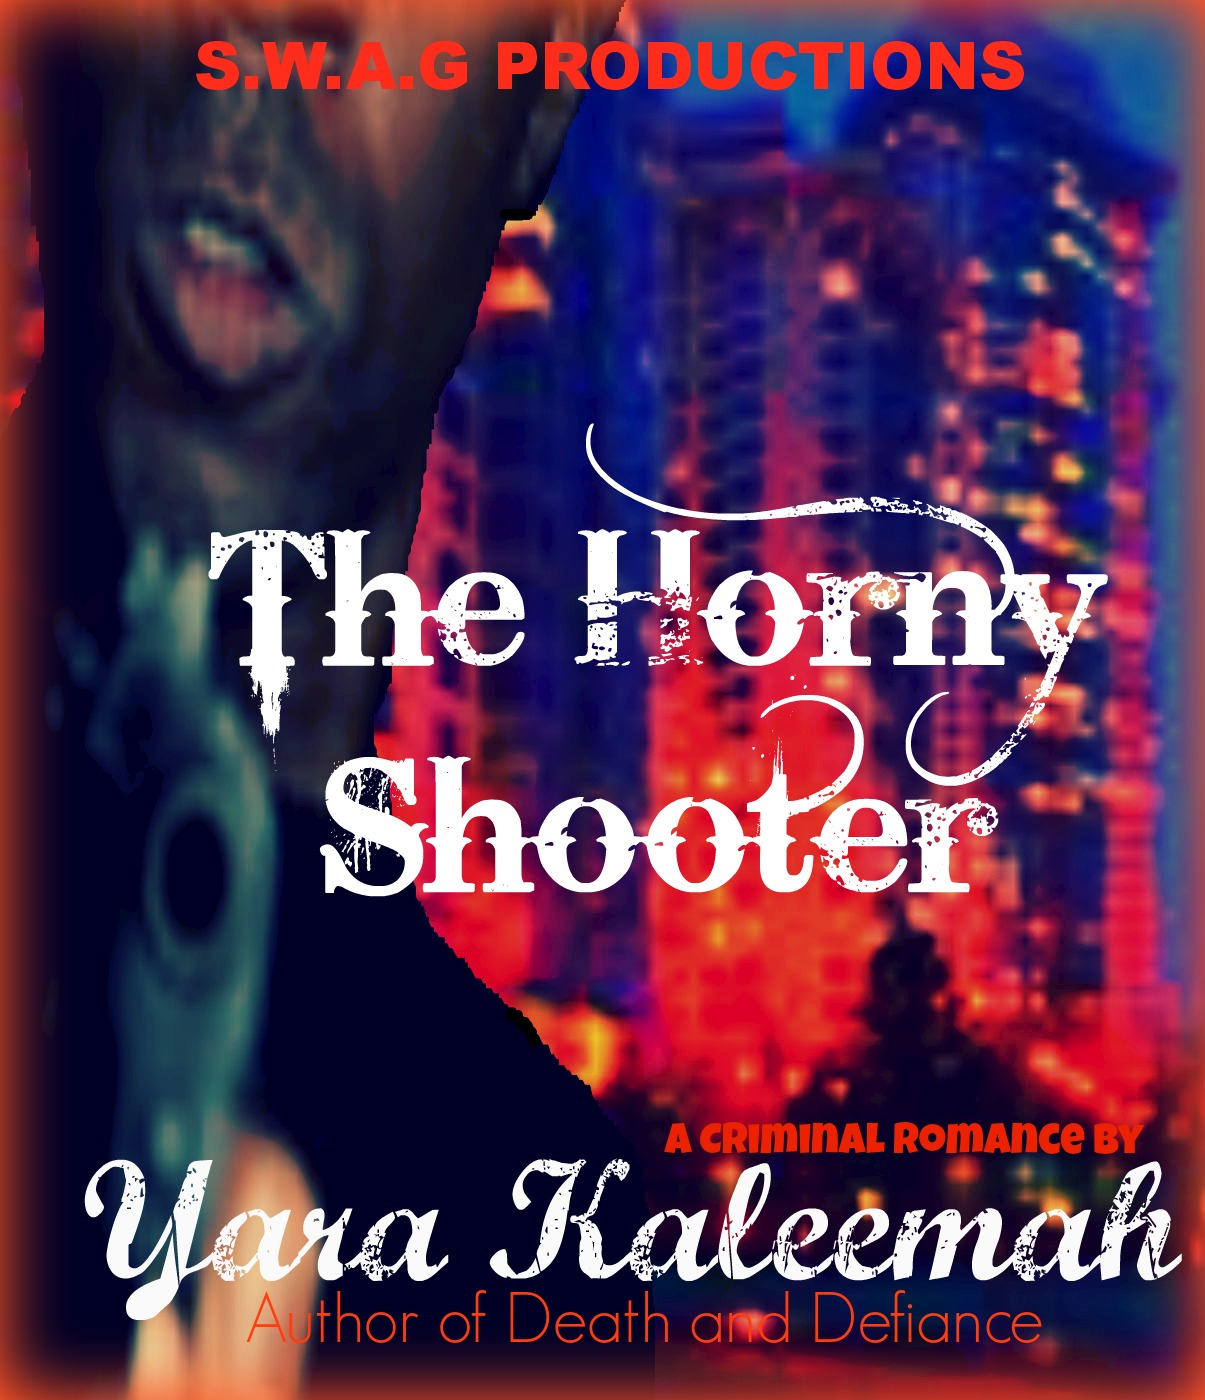 Kory, The Horny Shooter